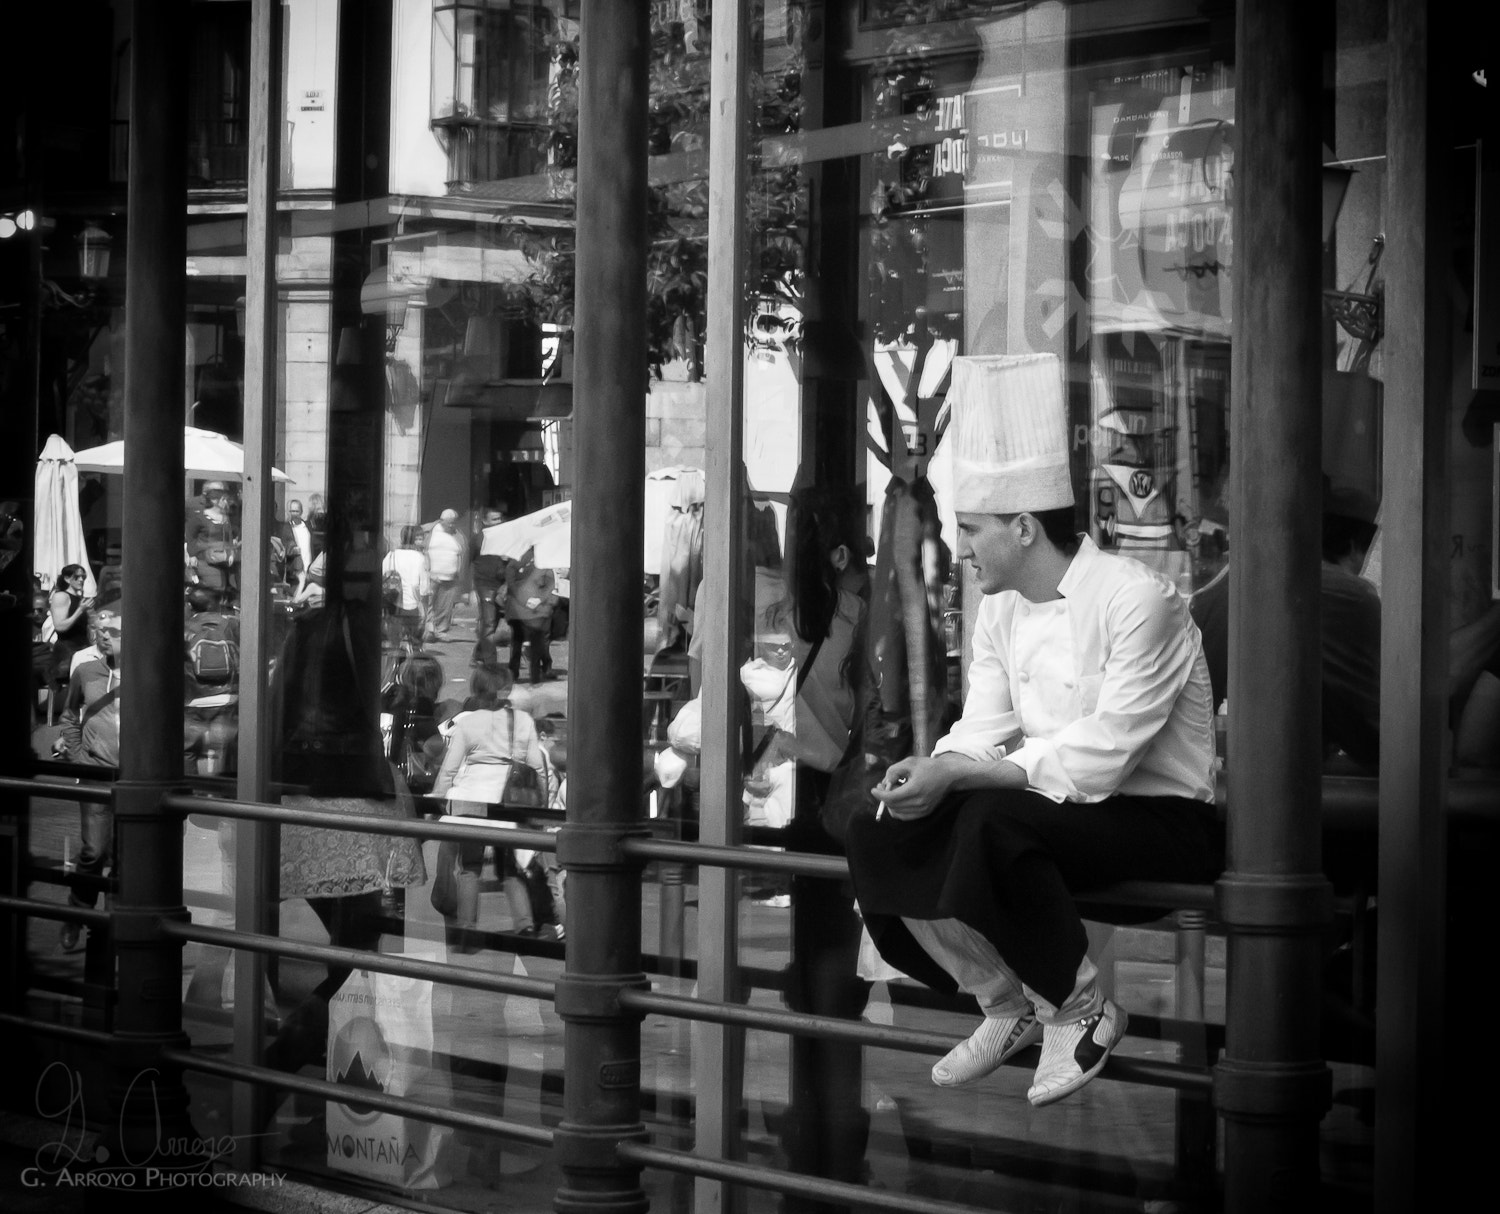 Photograph Smoke break for Chef by Giovanni Arroyo on 500px